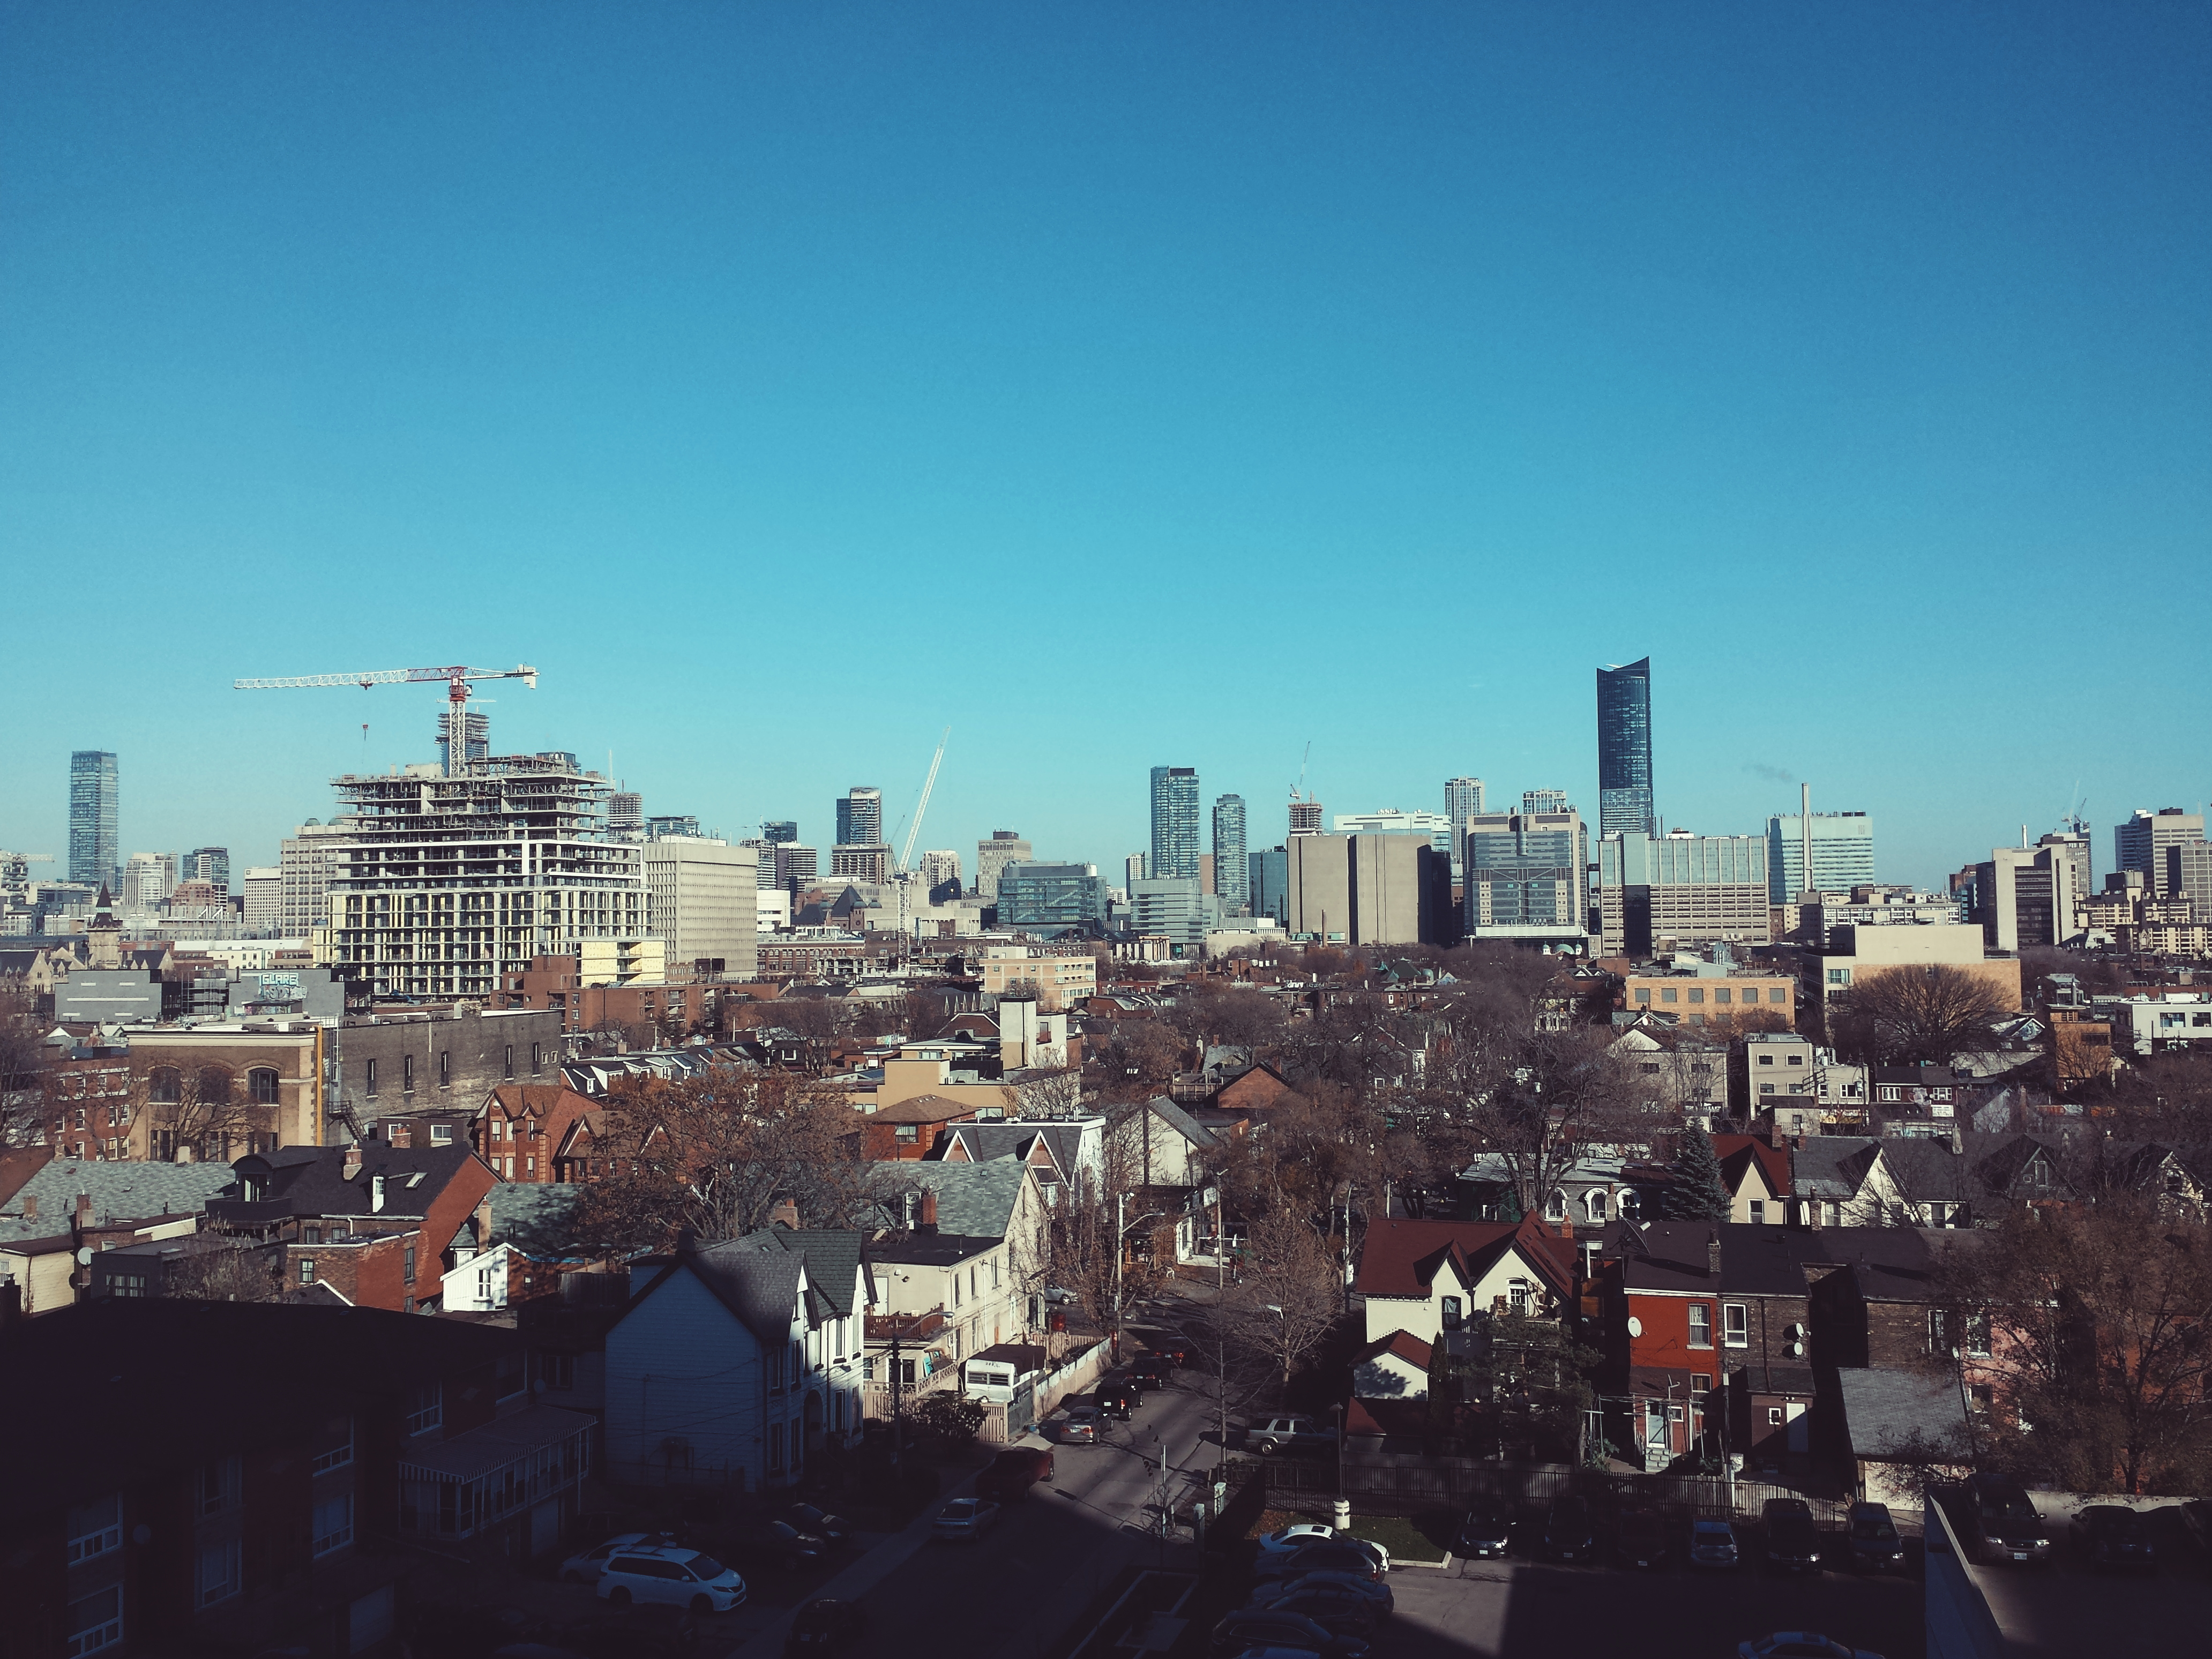 A panaroma of the city as seen from Toronto Western.